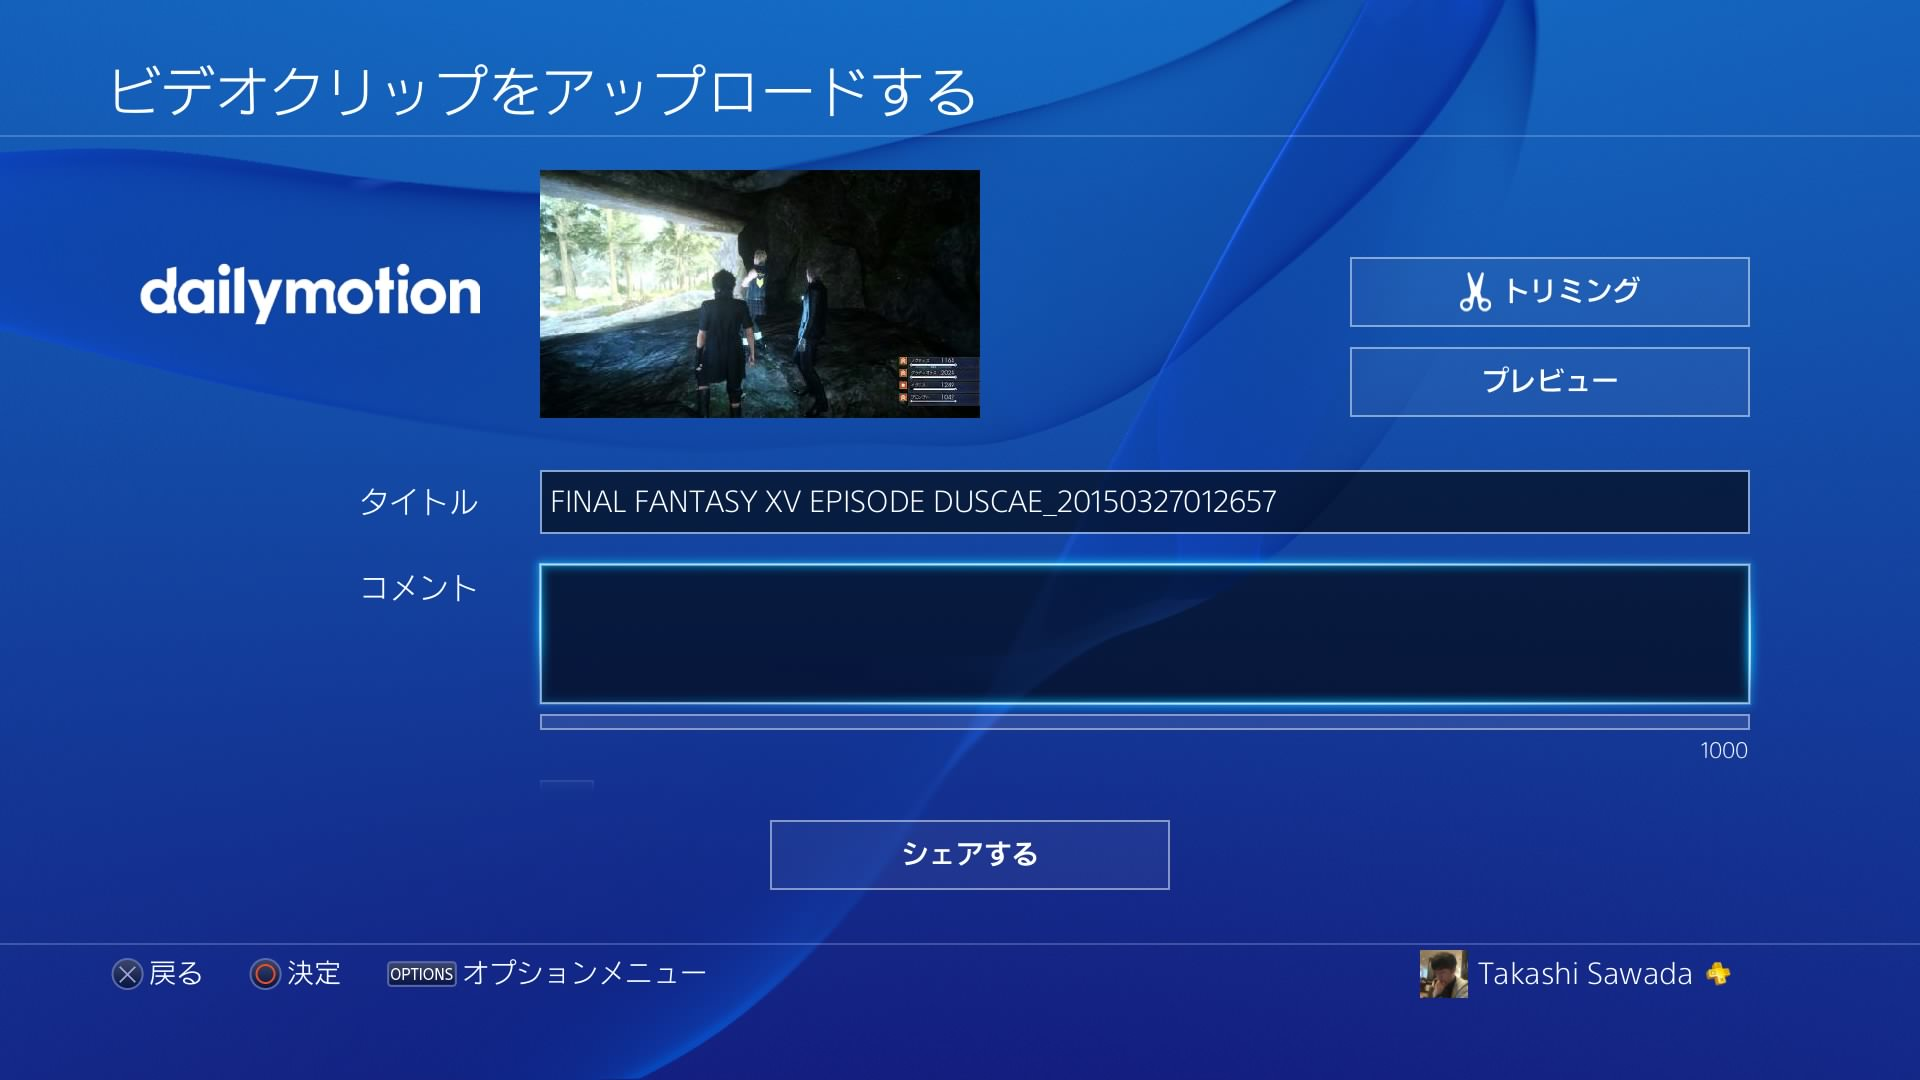 How to upload videos from ps4 to dailymotion 12